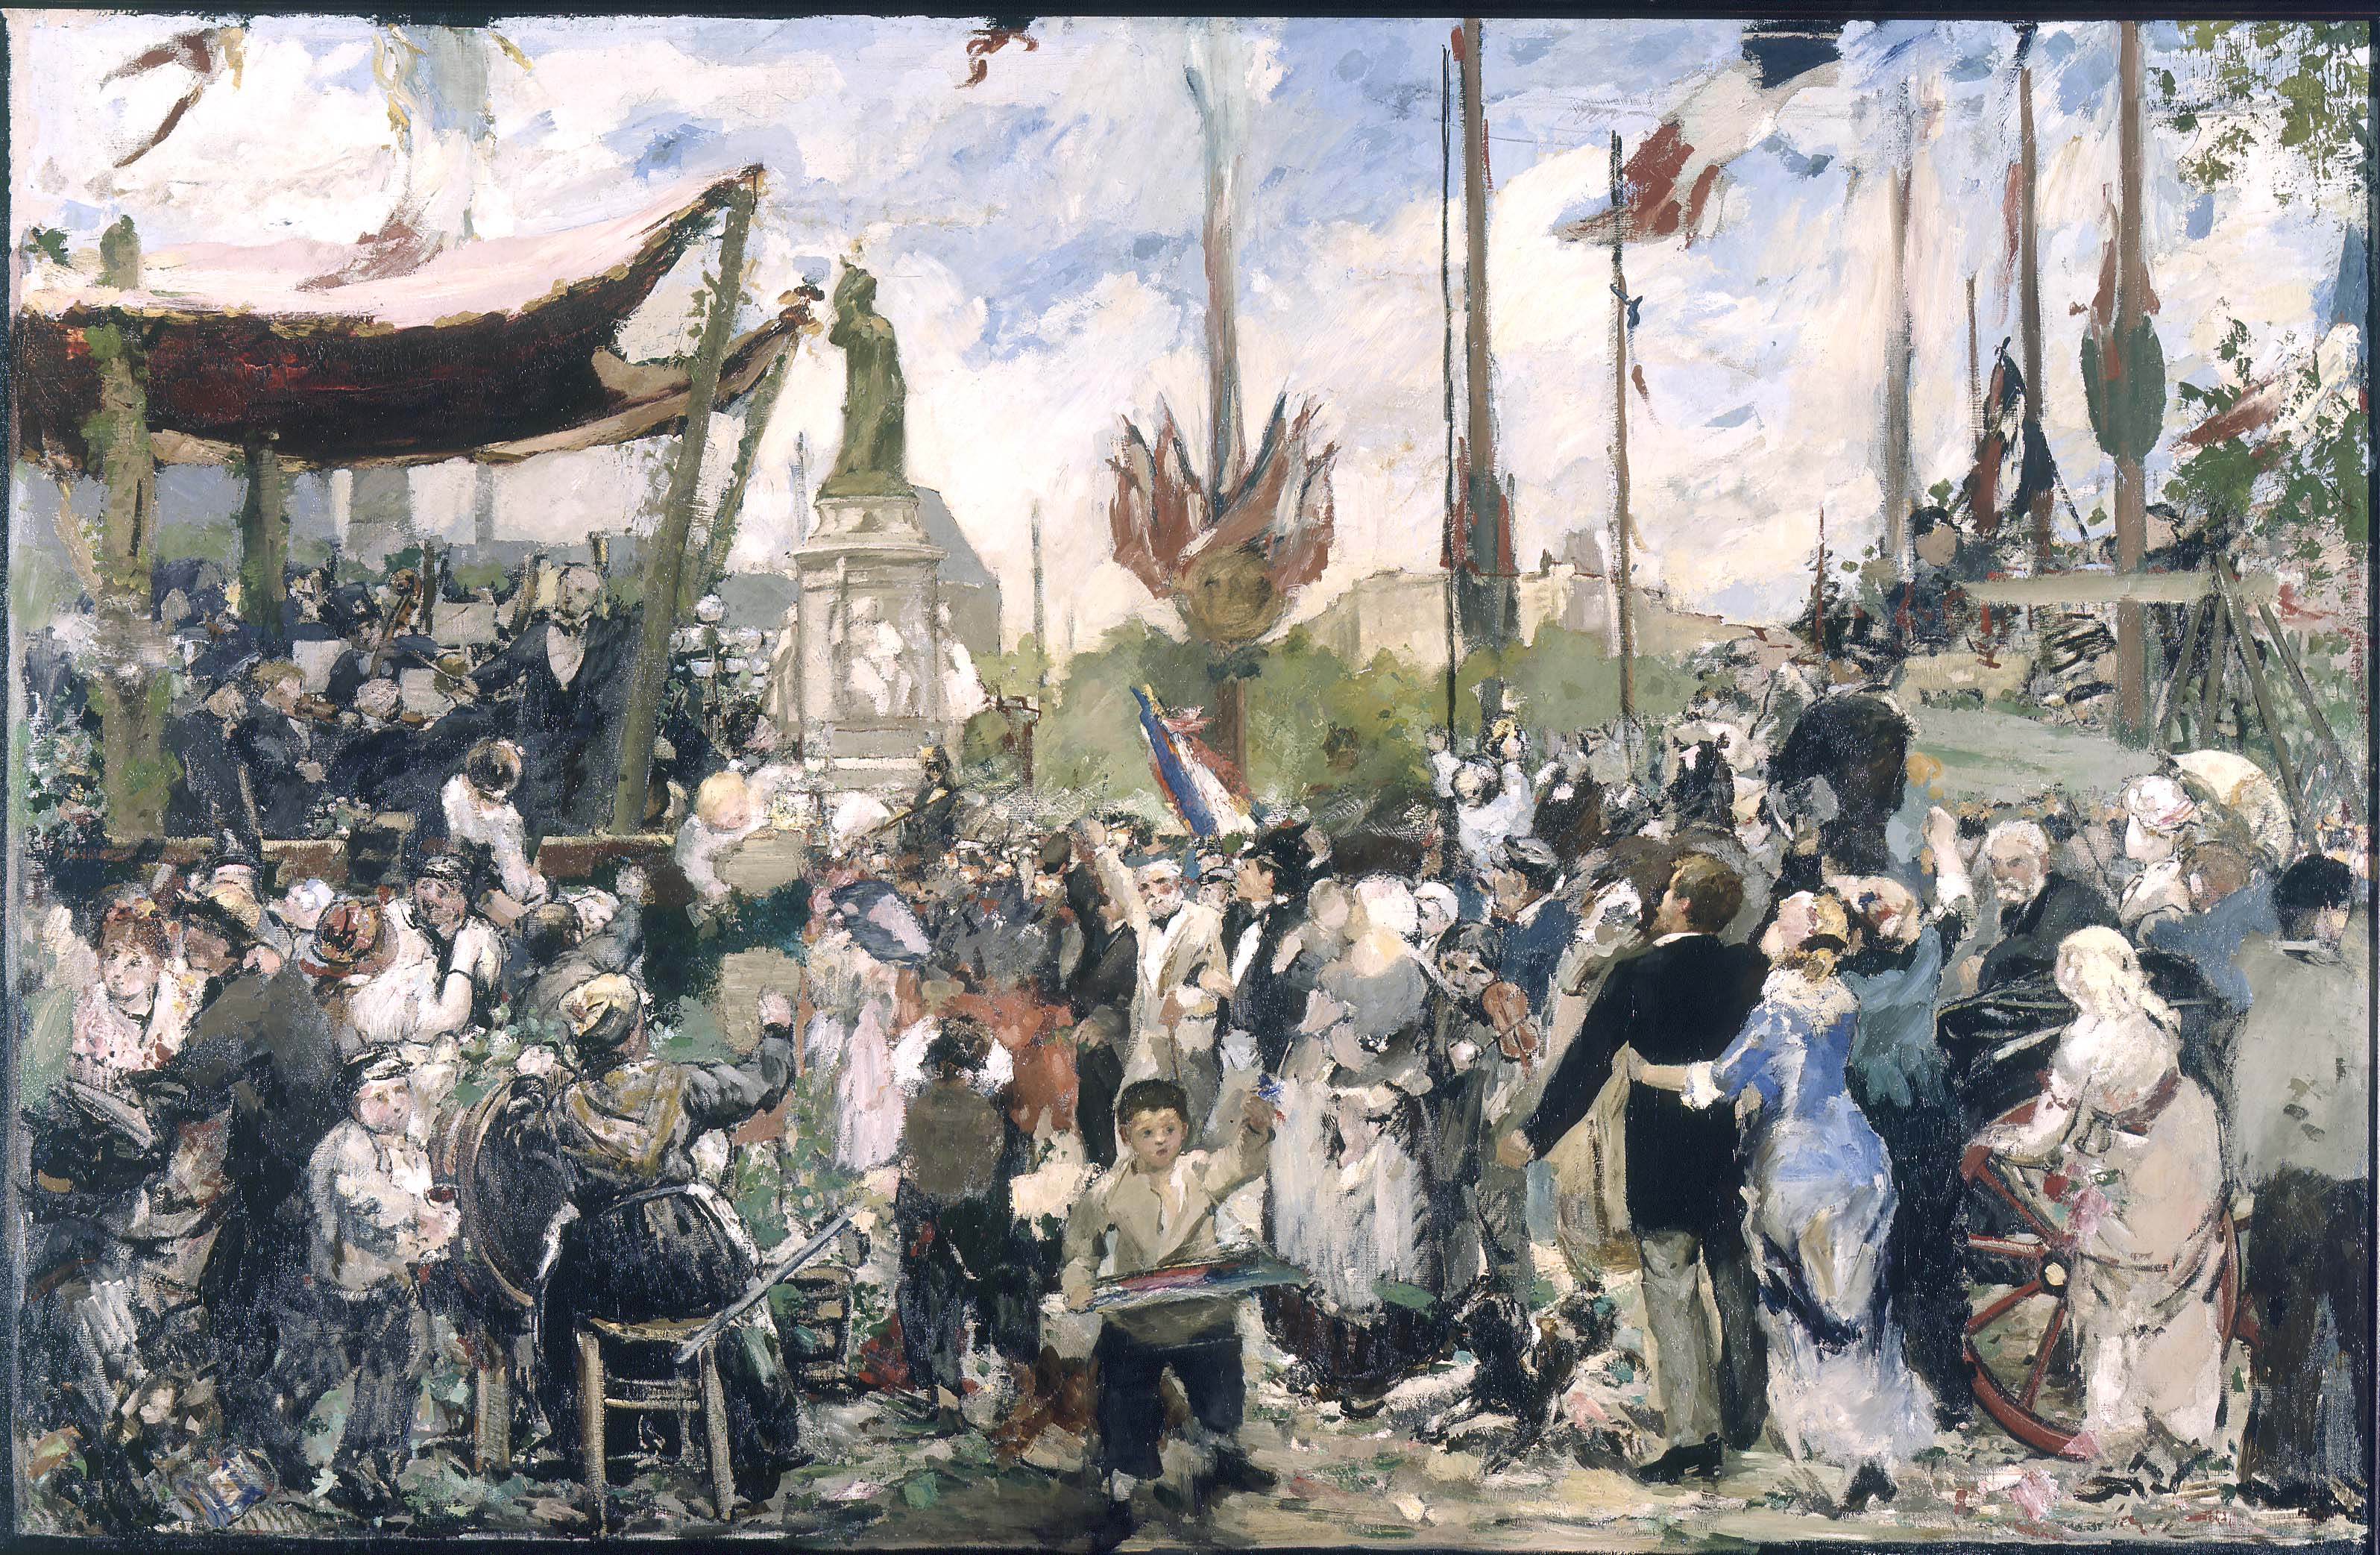 A. P. Roll - Bastille Day 1880, inauguration of the monument to the Republic